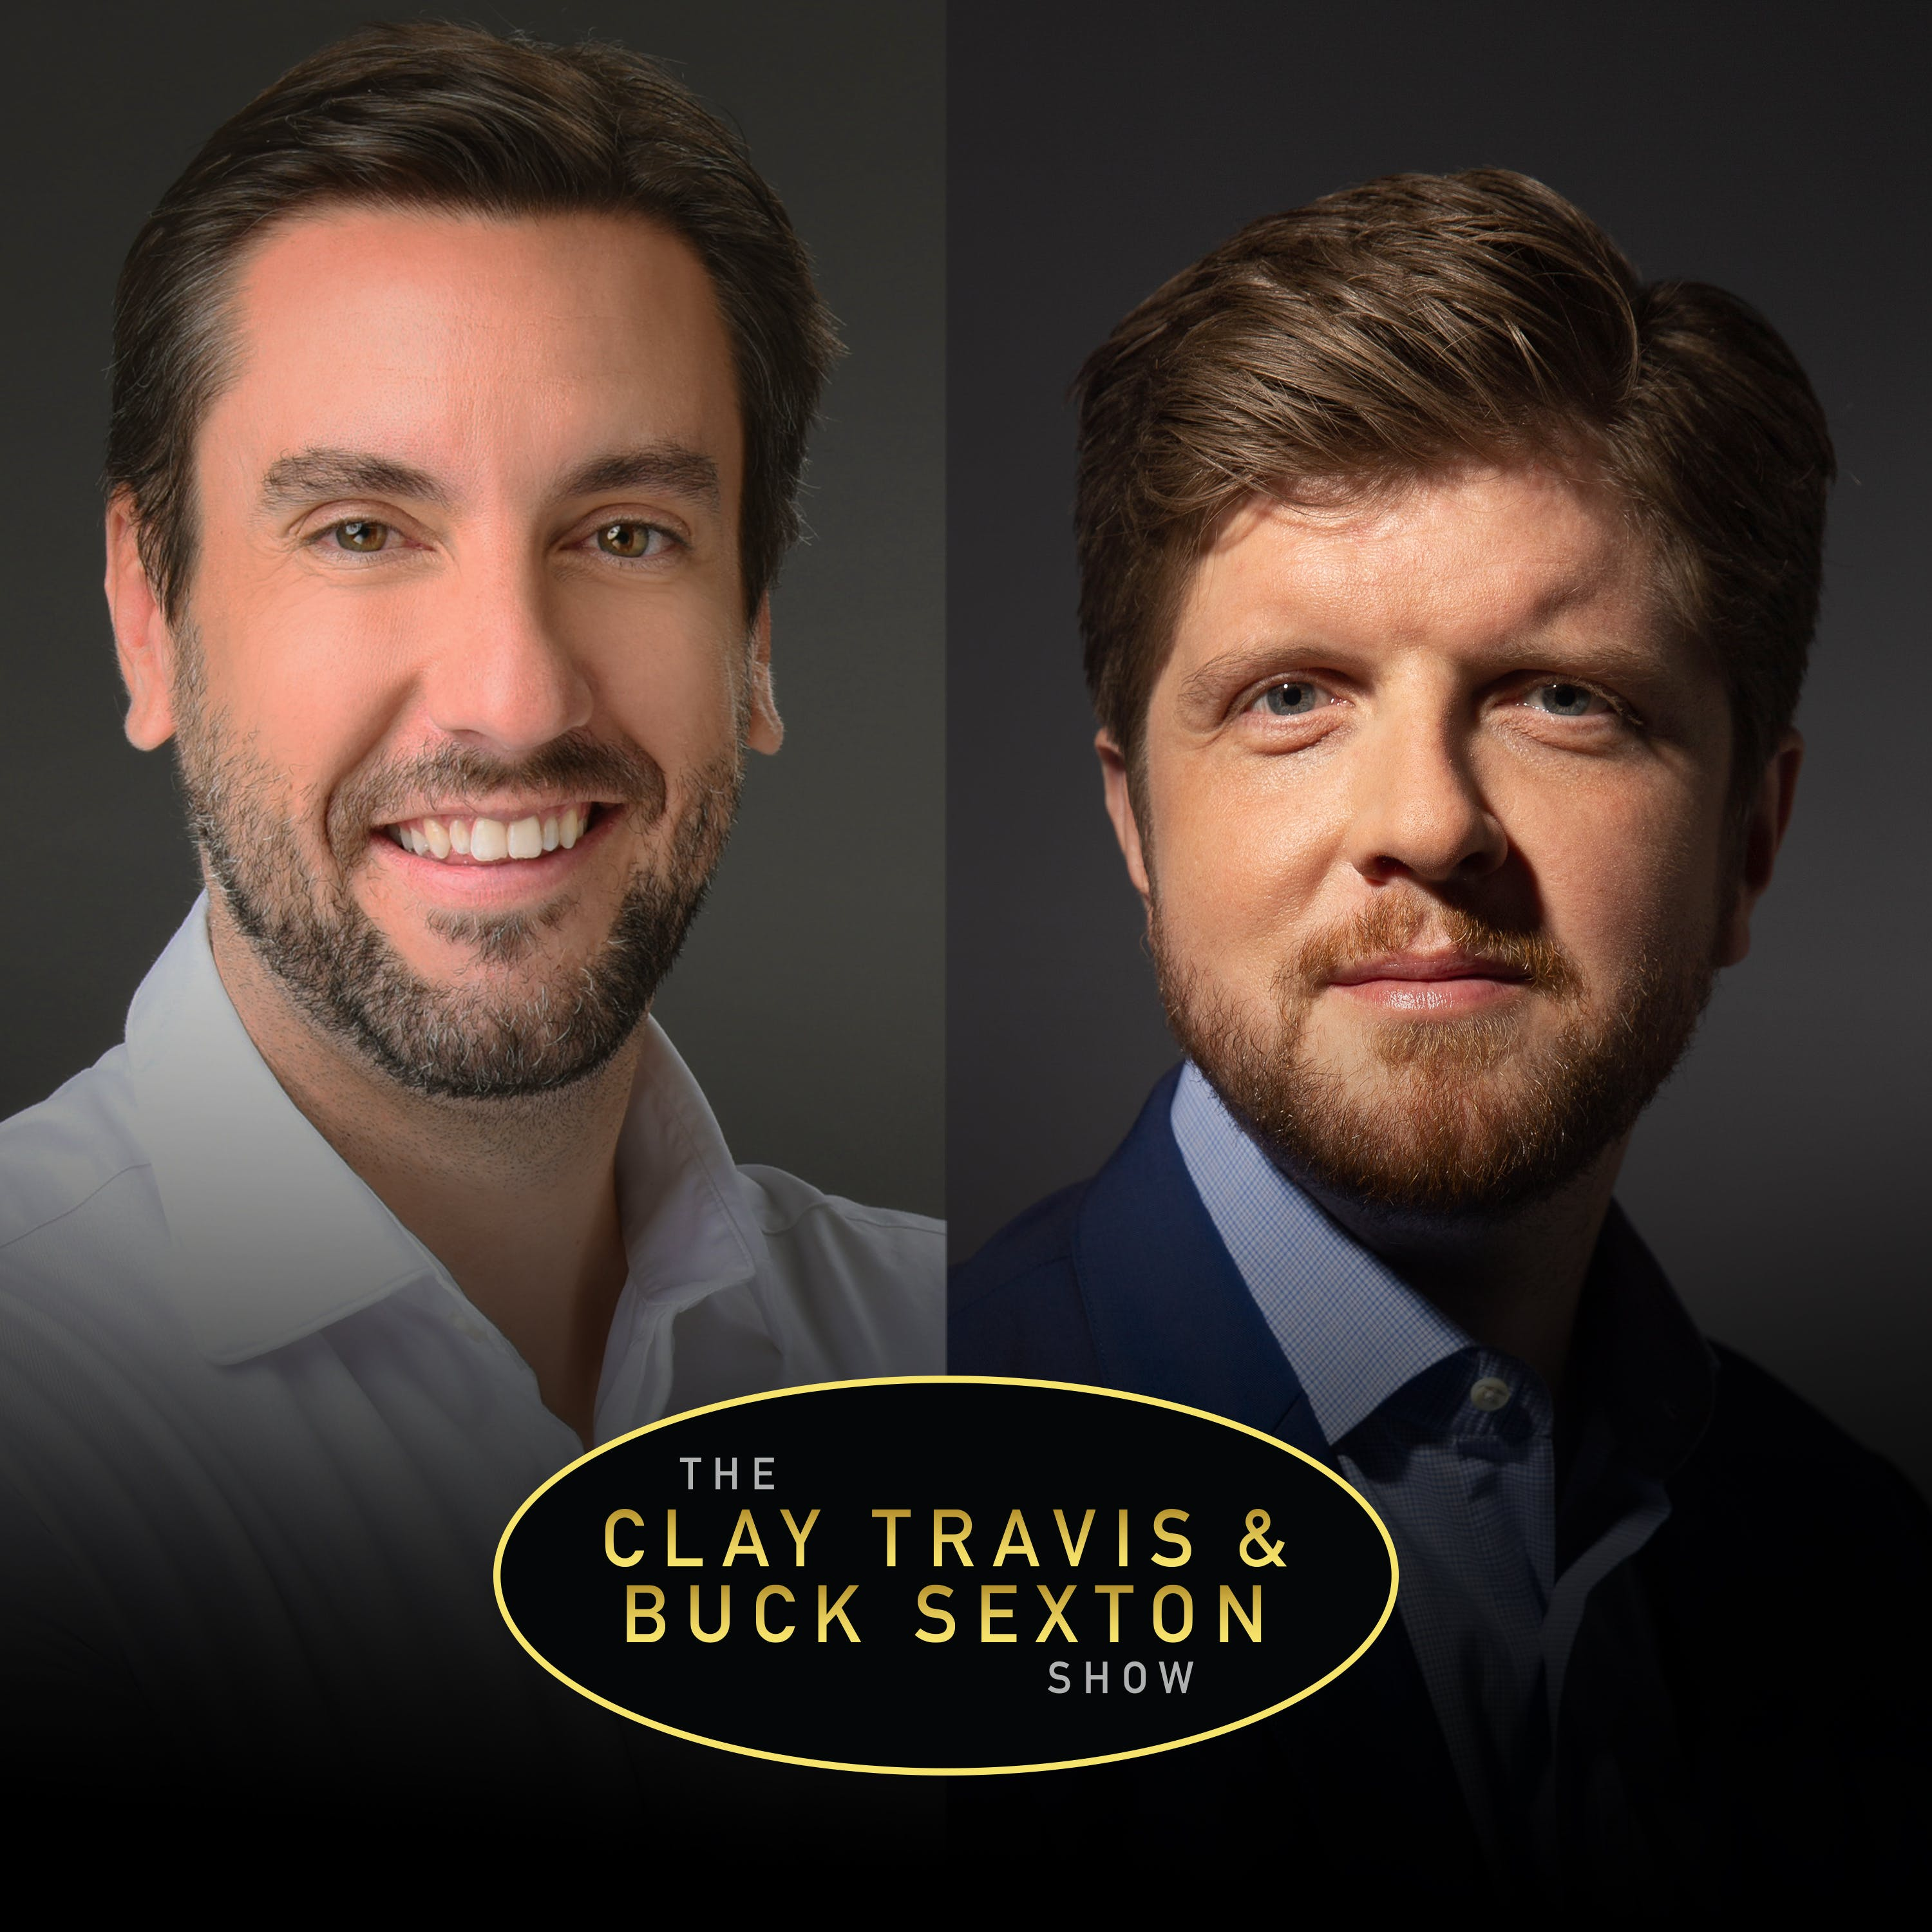 Clay Travis and Buck Sexton Show H1 – Jul 29 2021